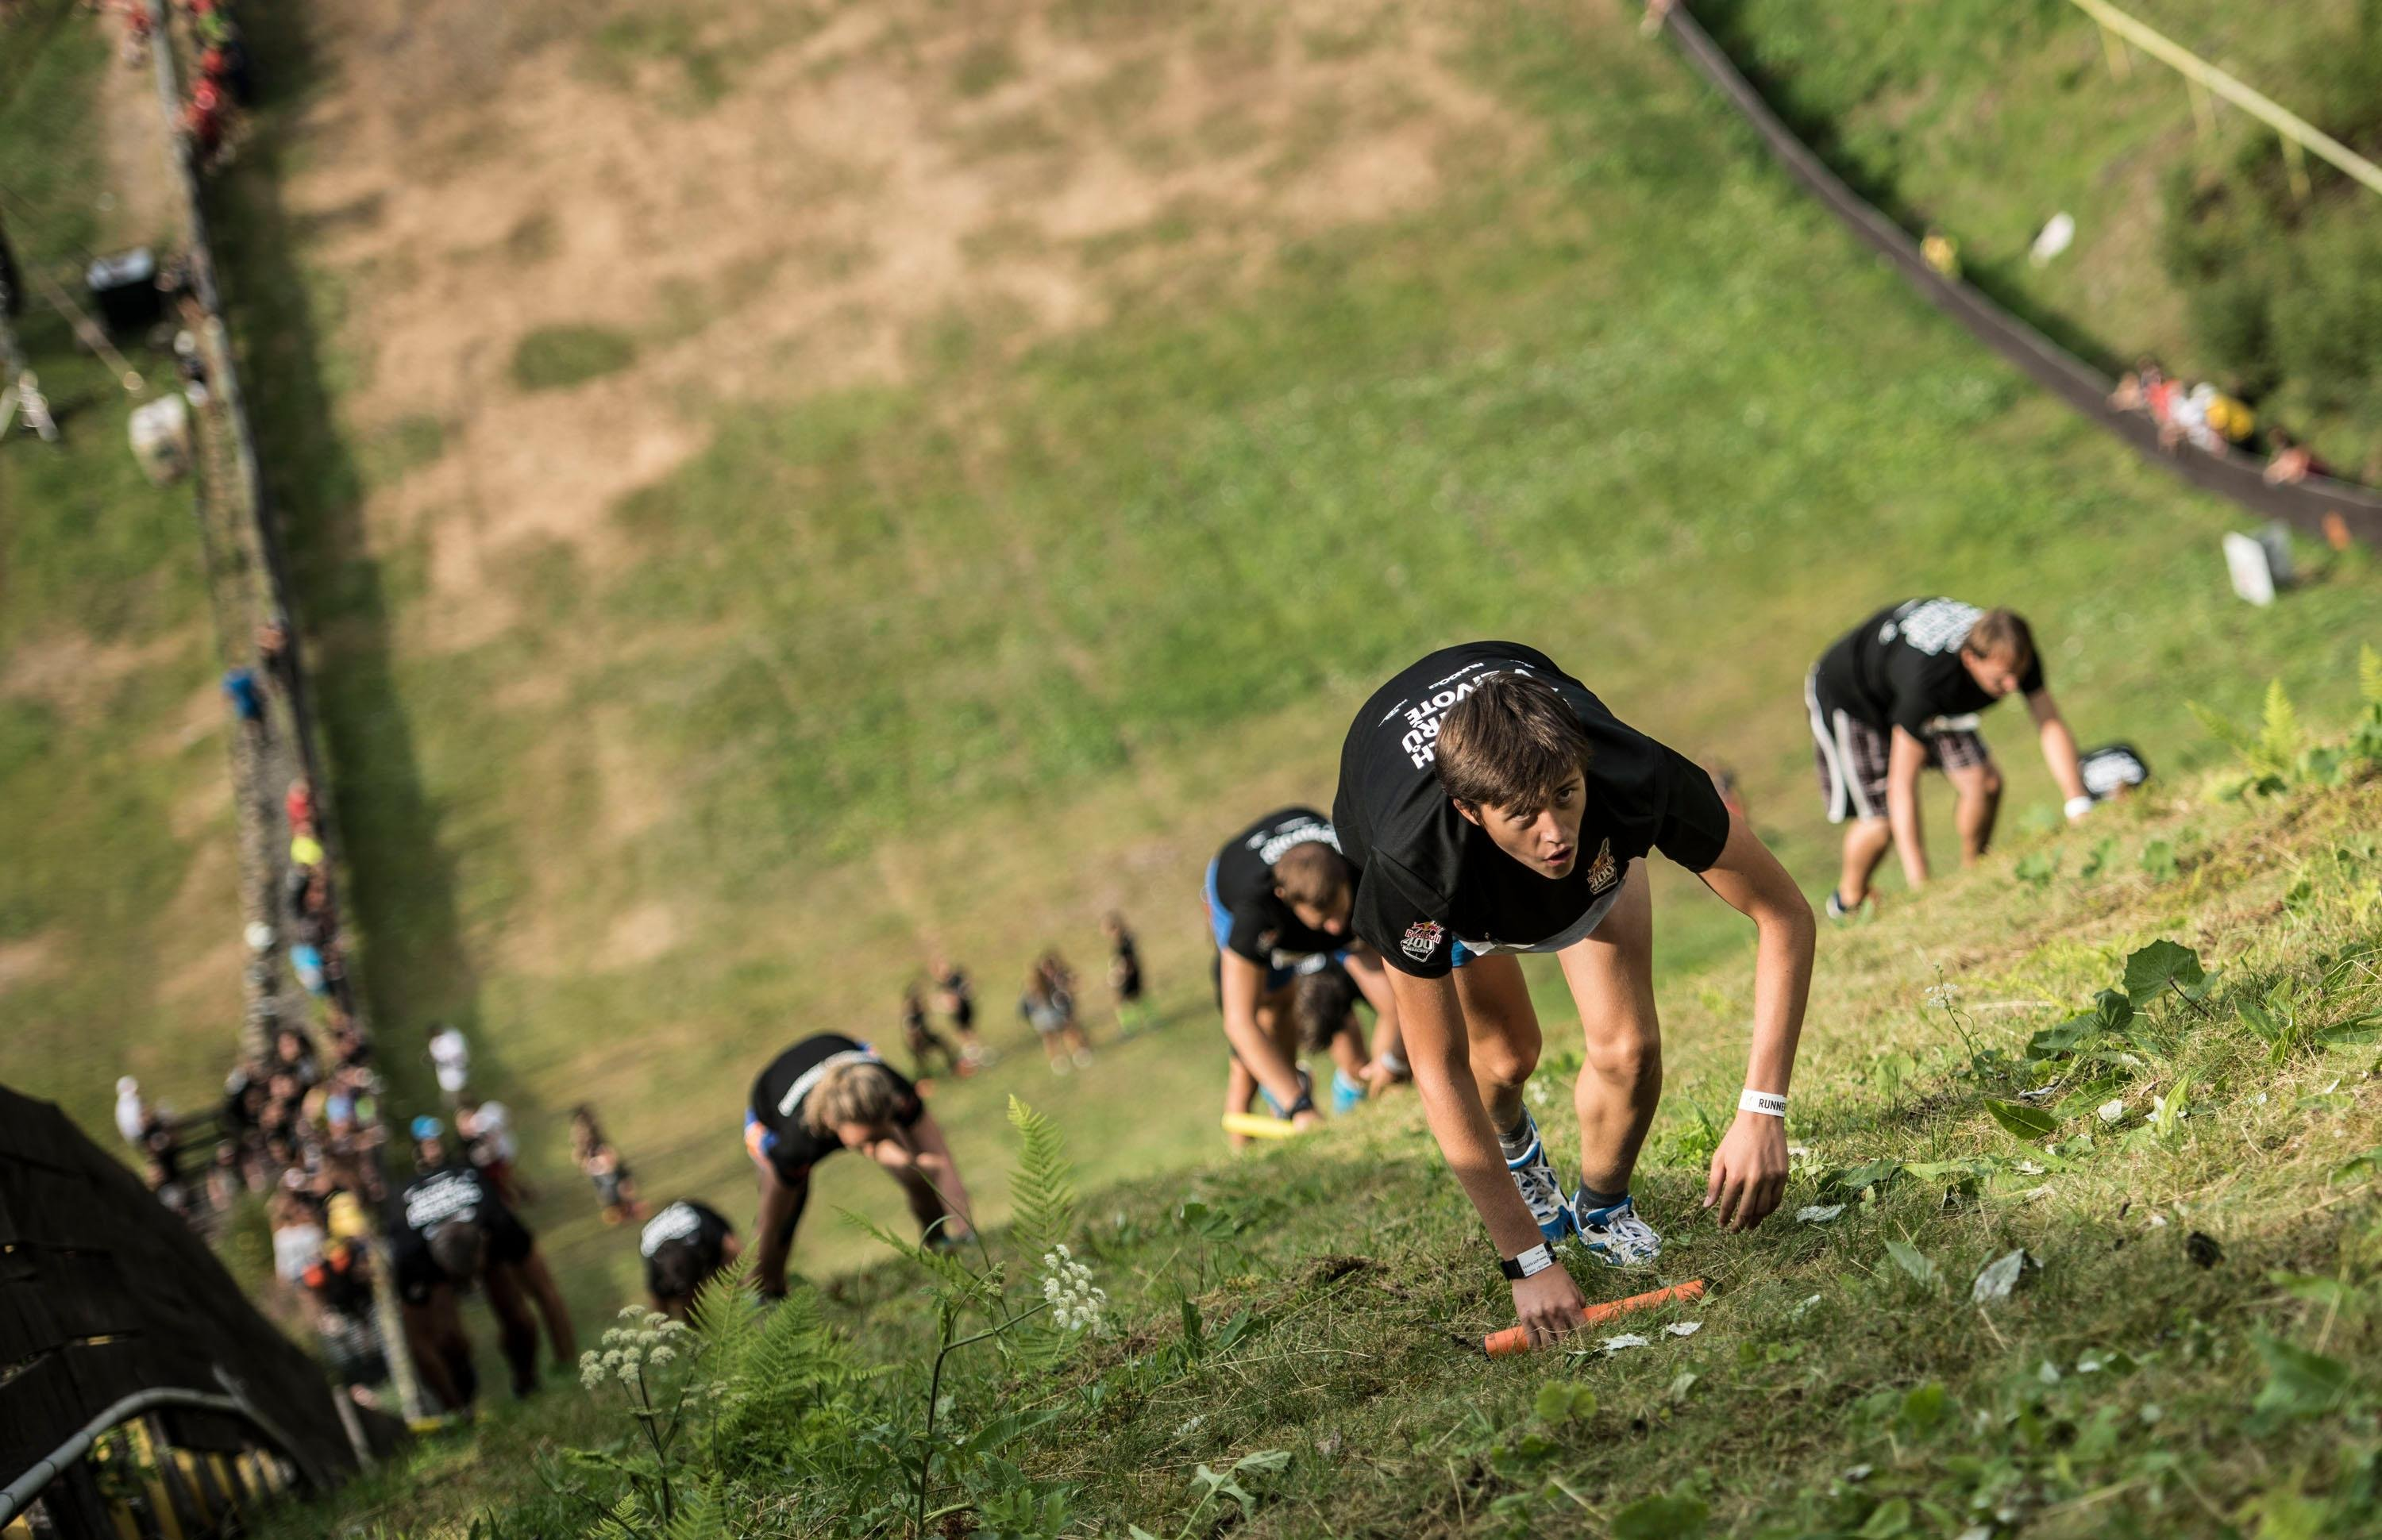 Competitors perform at the Red Bull 400 in Harrachov, Czech Republic on 15th September 2015